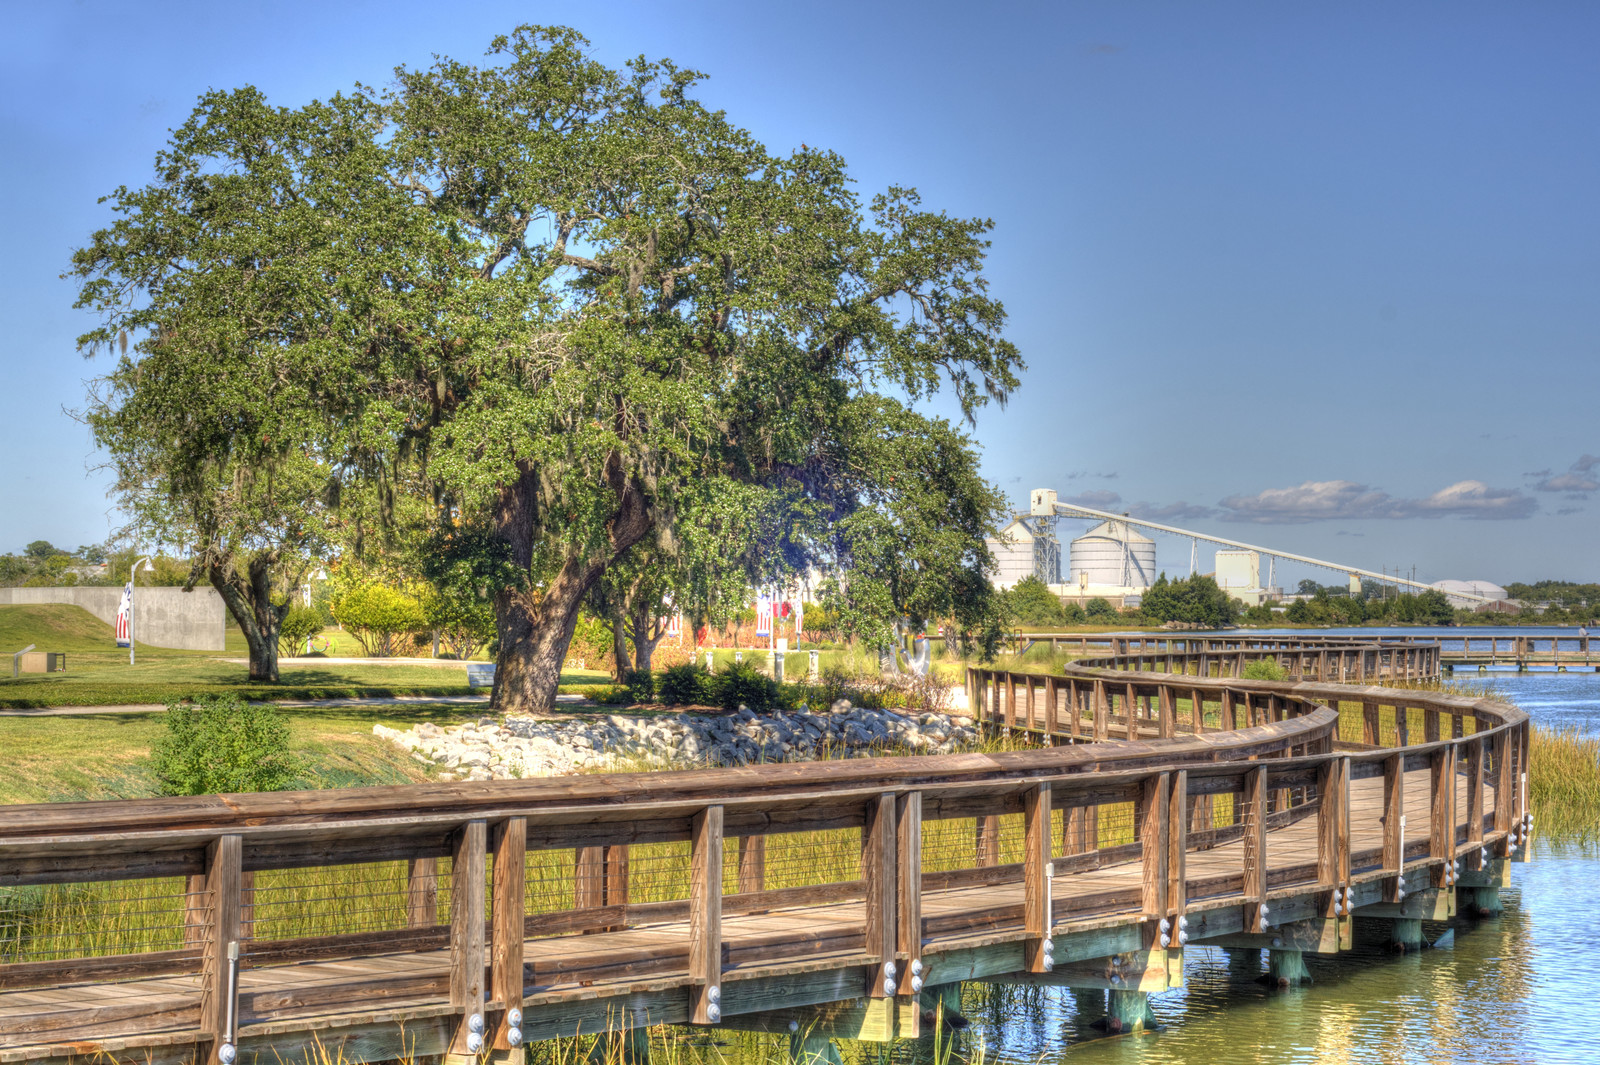 Southport NC boardwalk along the water with green trees in the park and the industrial district in the background